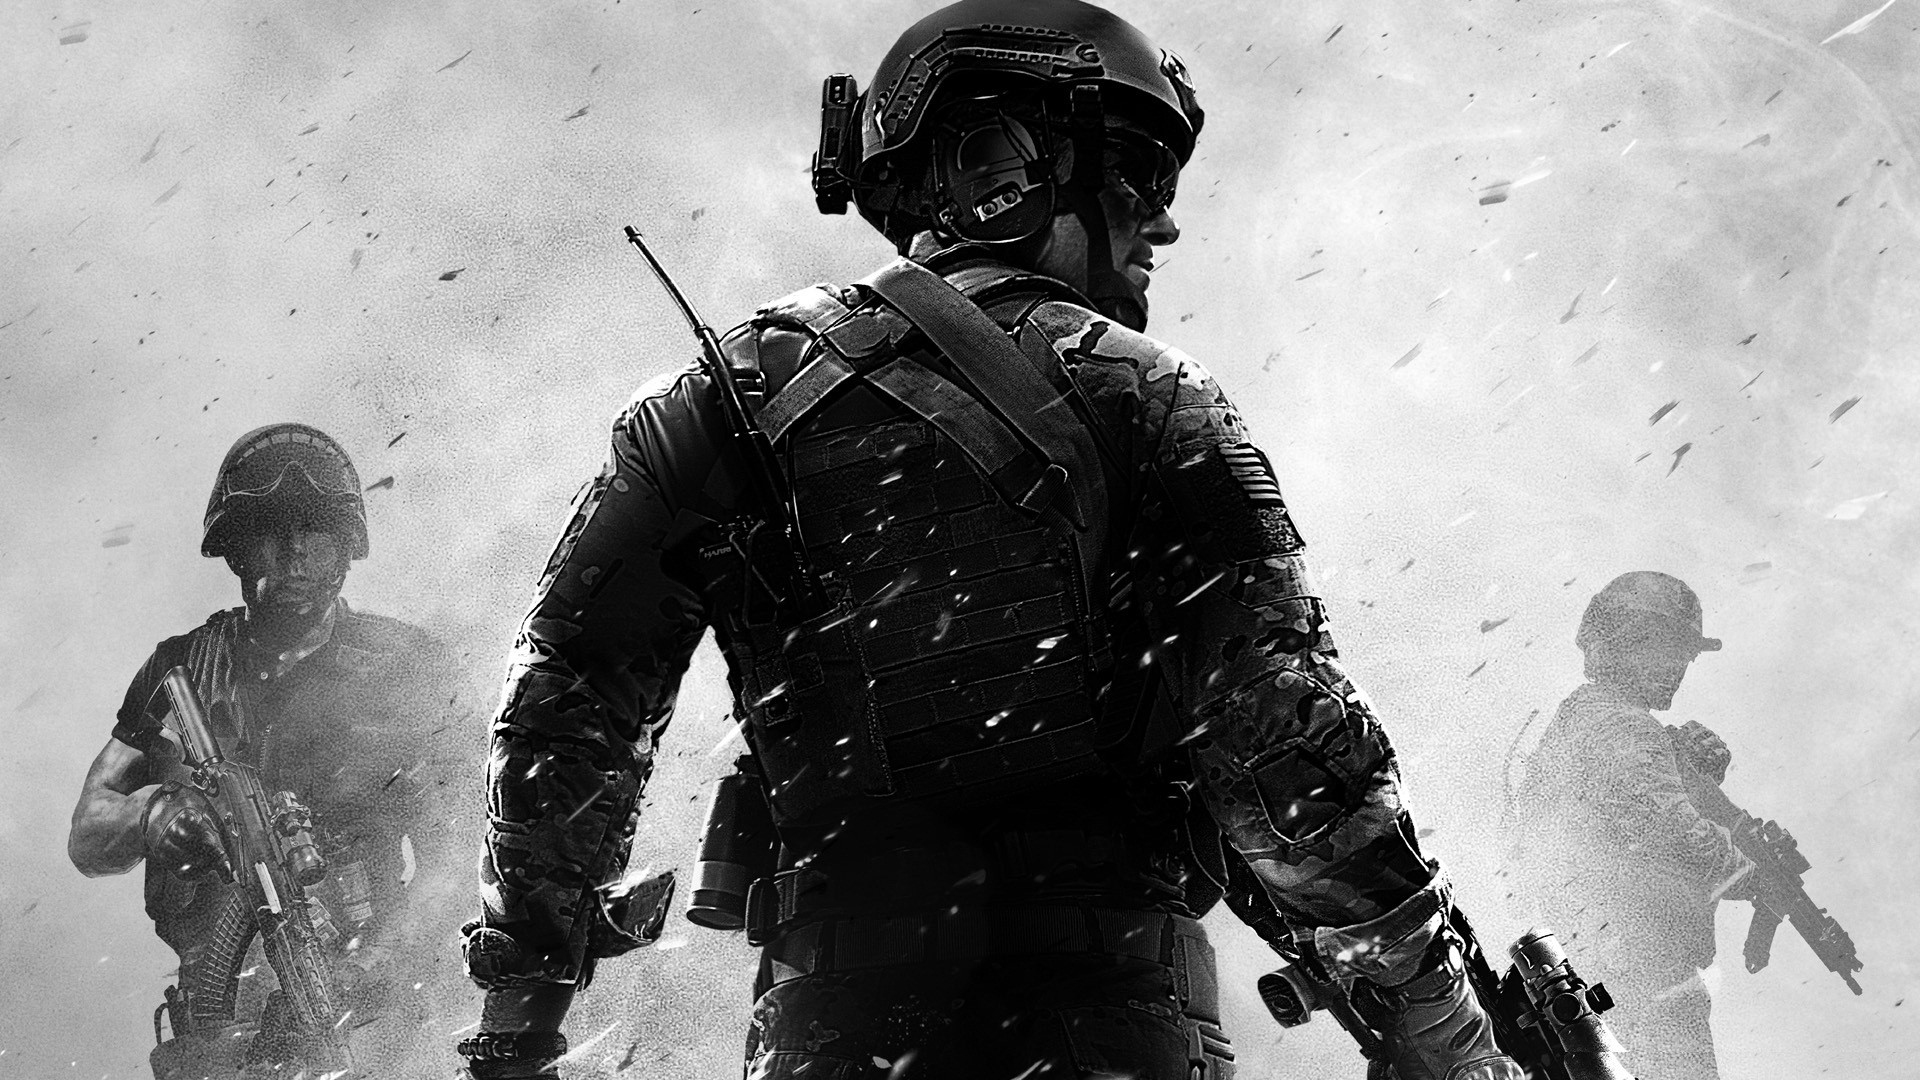 Call Of Duty Wallpaper 1920x1080 42714